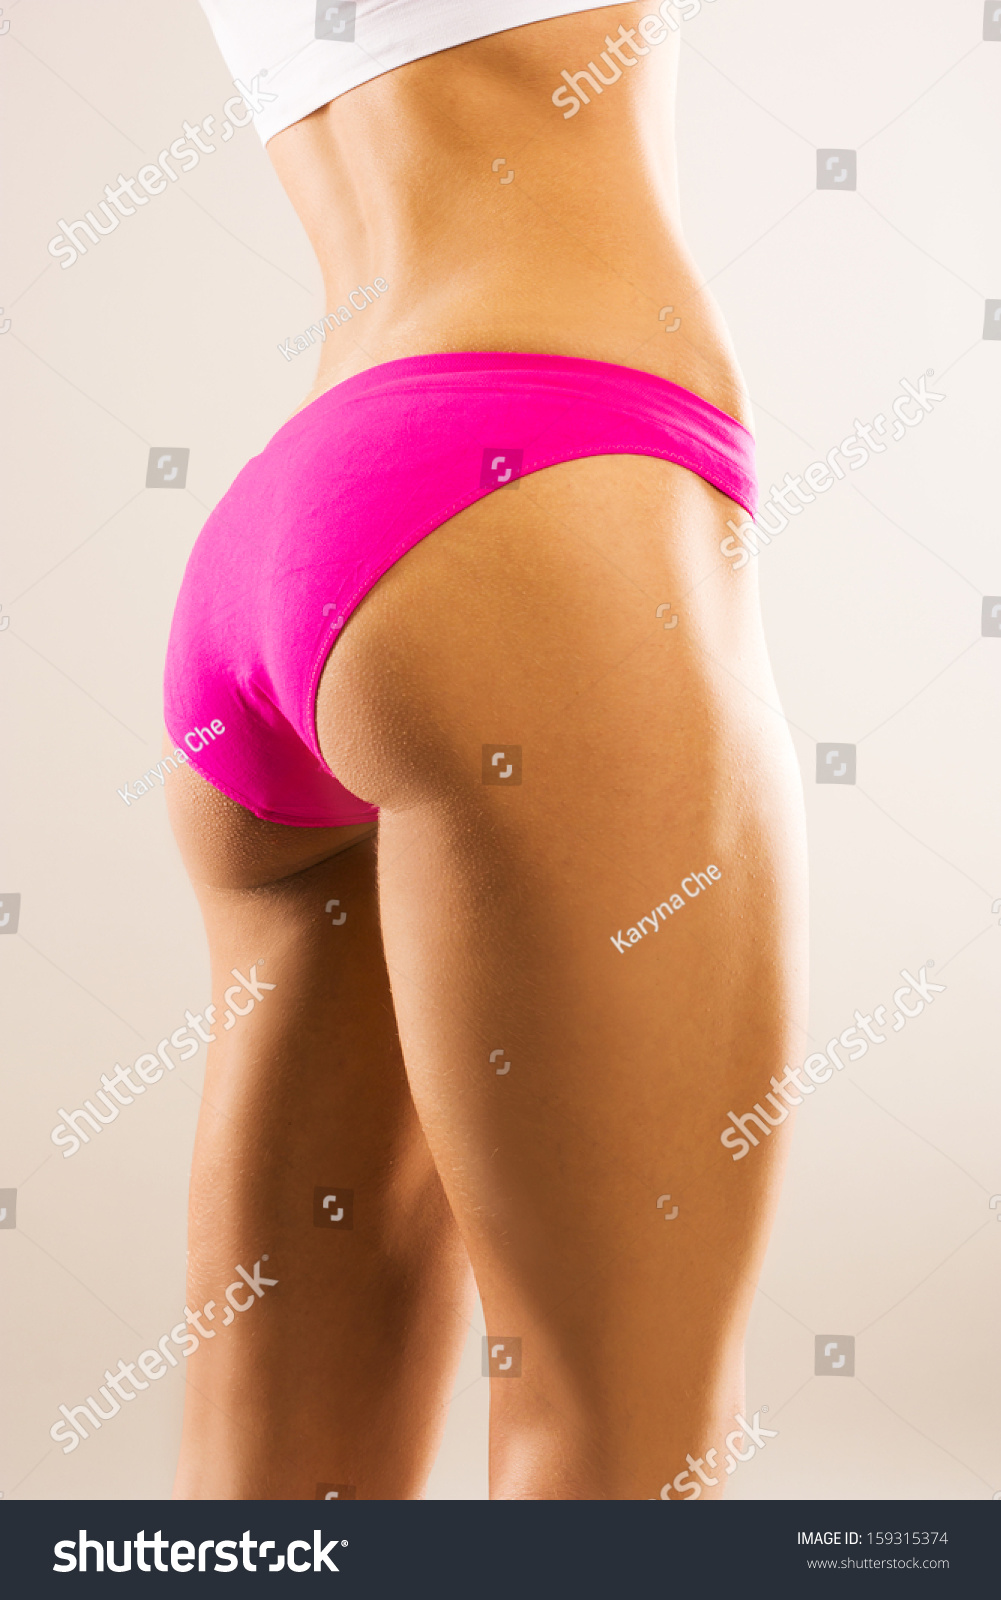 sexy ass young women stock photo (royalty free) 159315374 - shutterstock